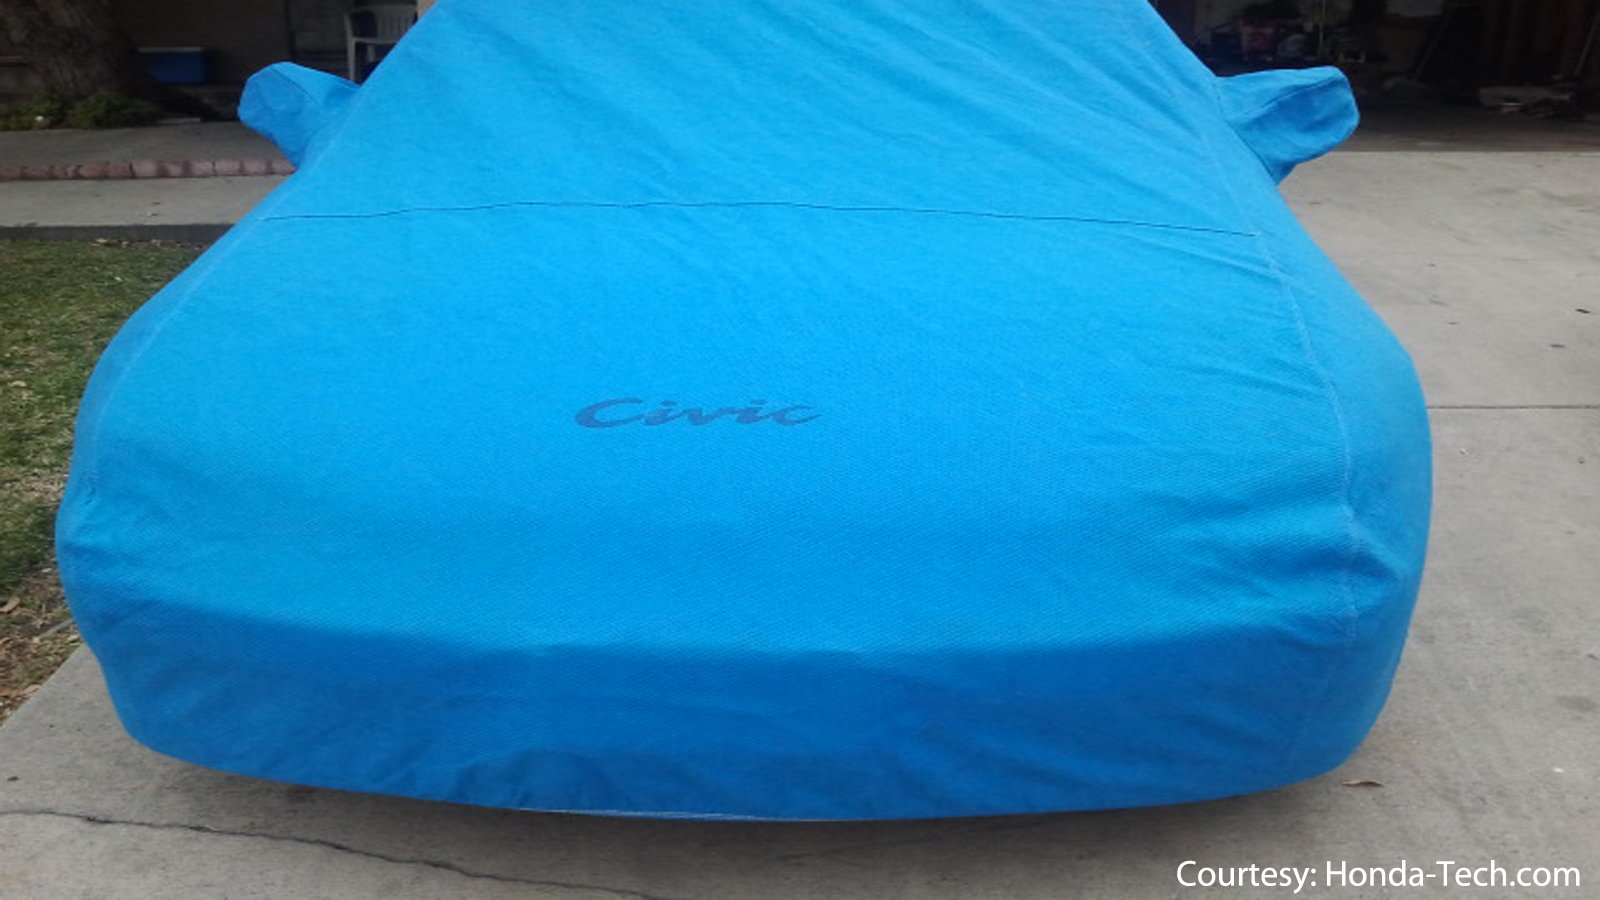 5. Utilize Car Covers and Your Garage